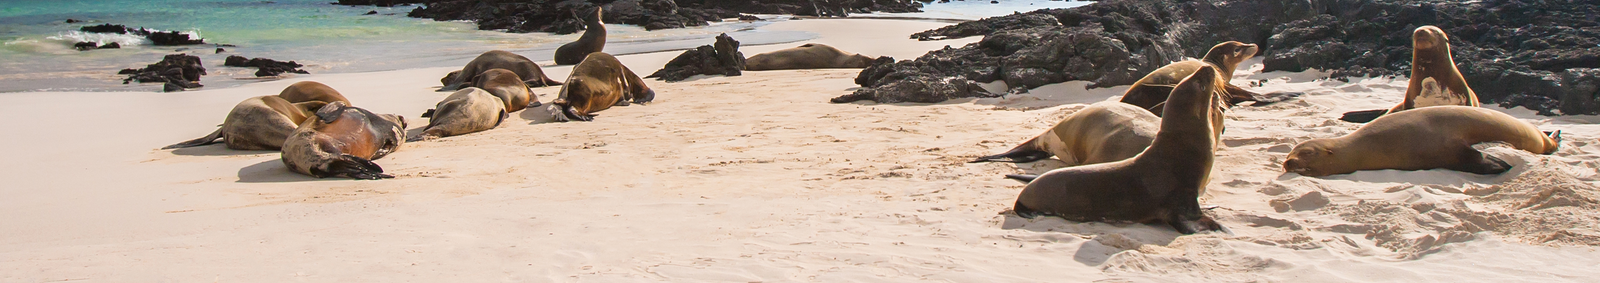 Sea Lions on Galapagos beach